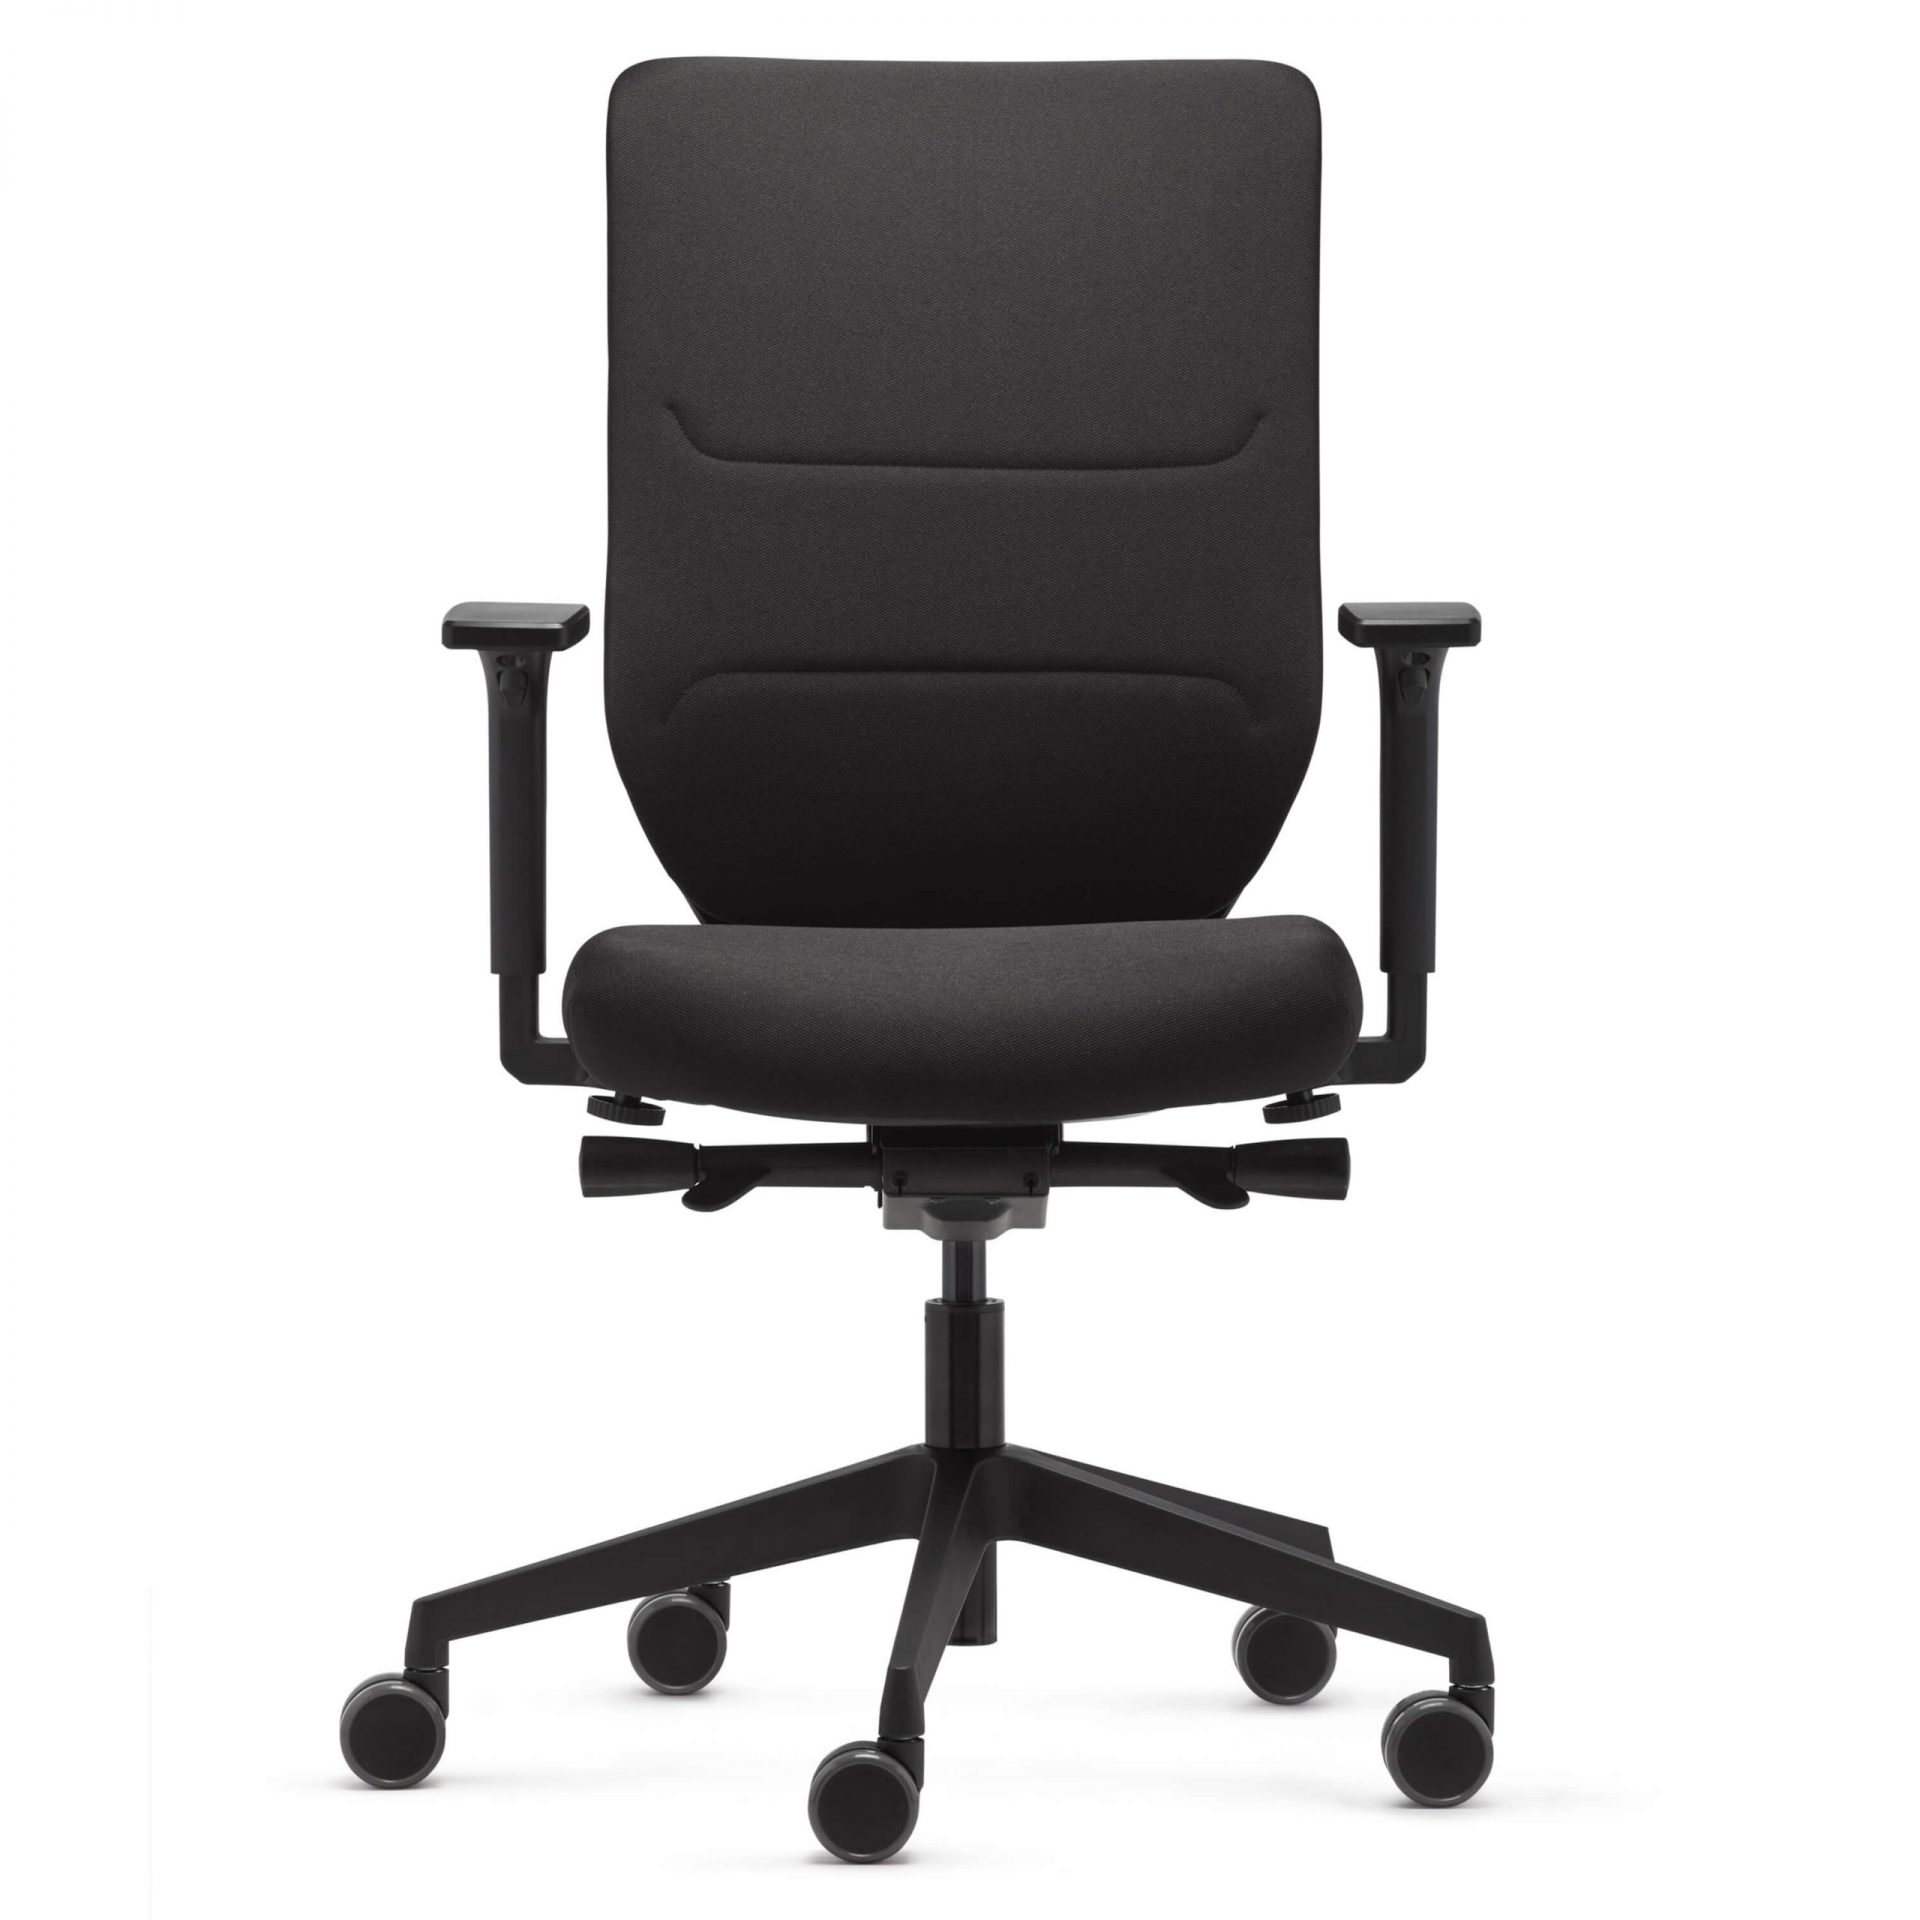 WF Upholstered Chair Black with Armrests